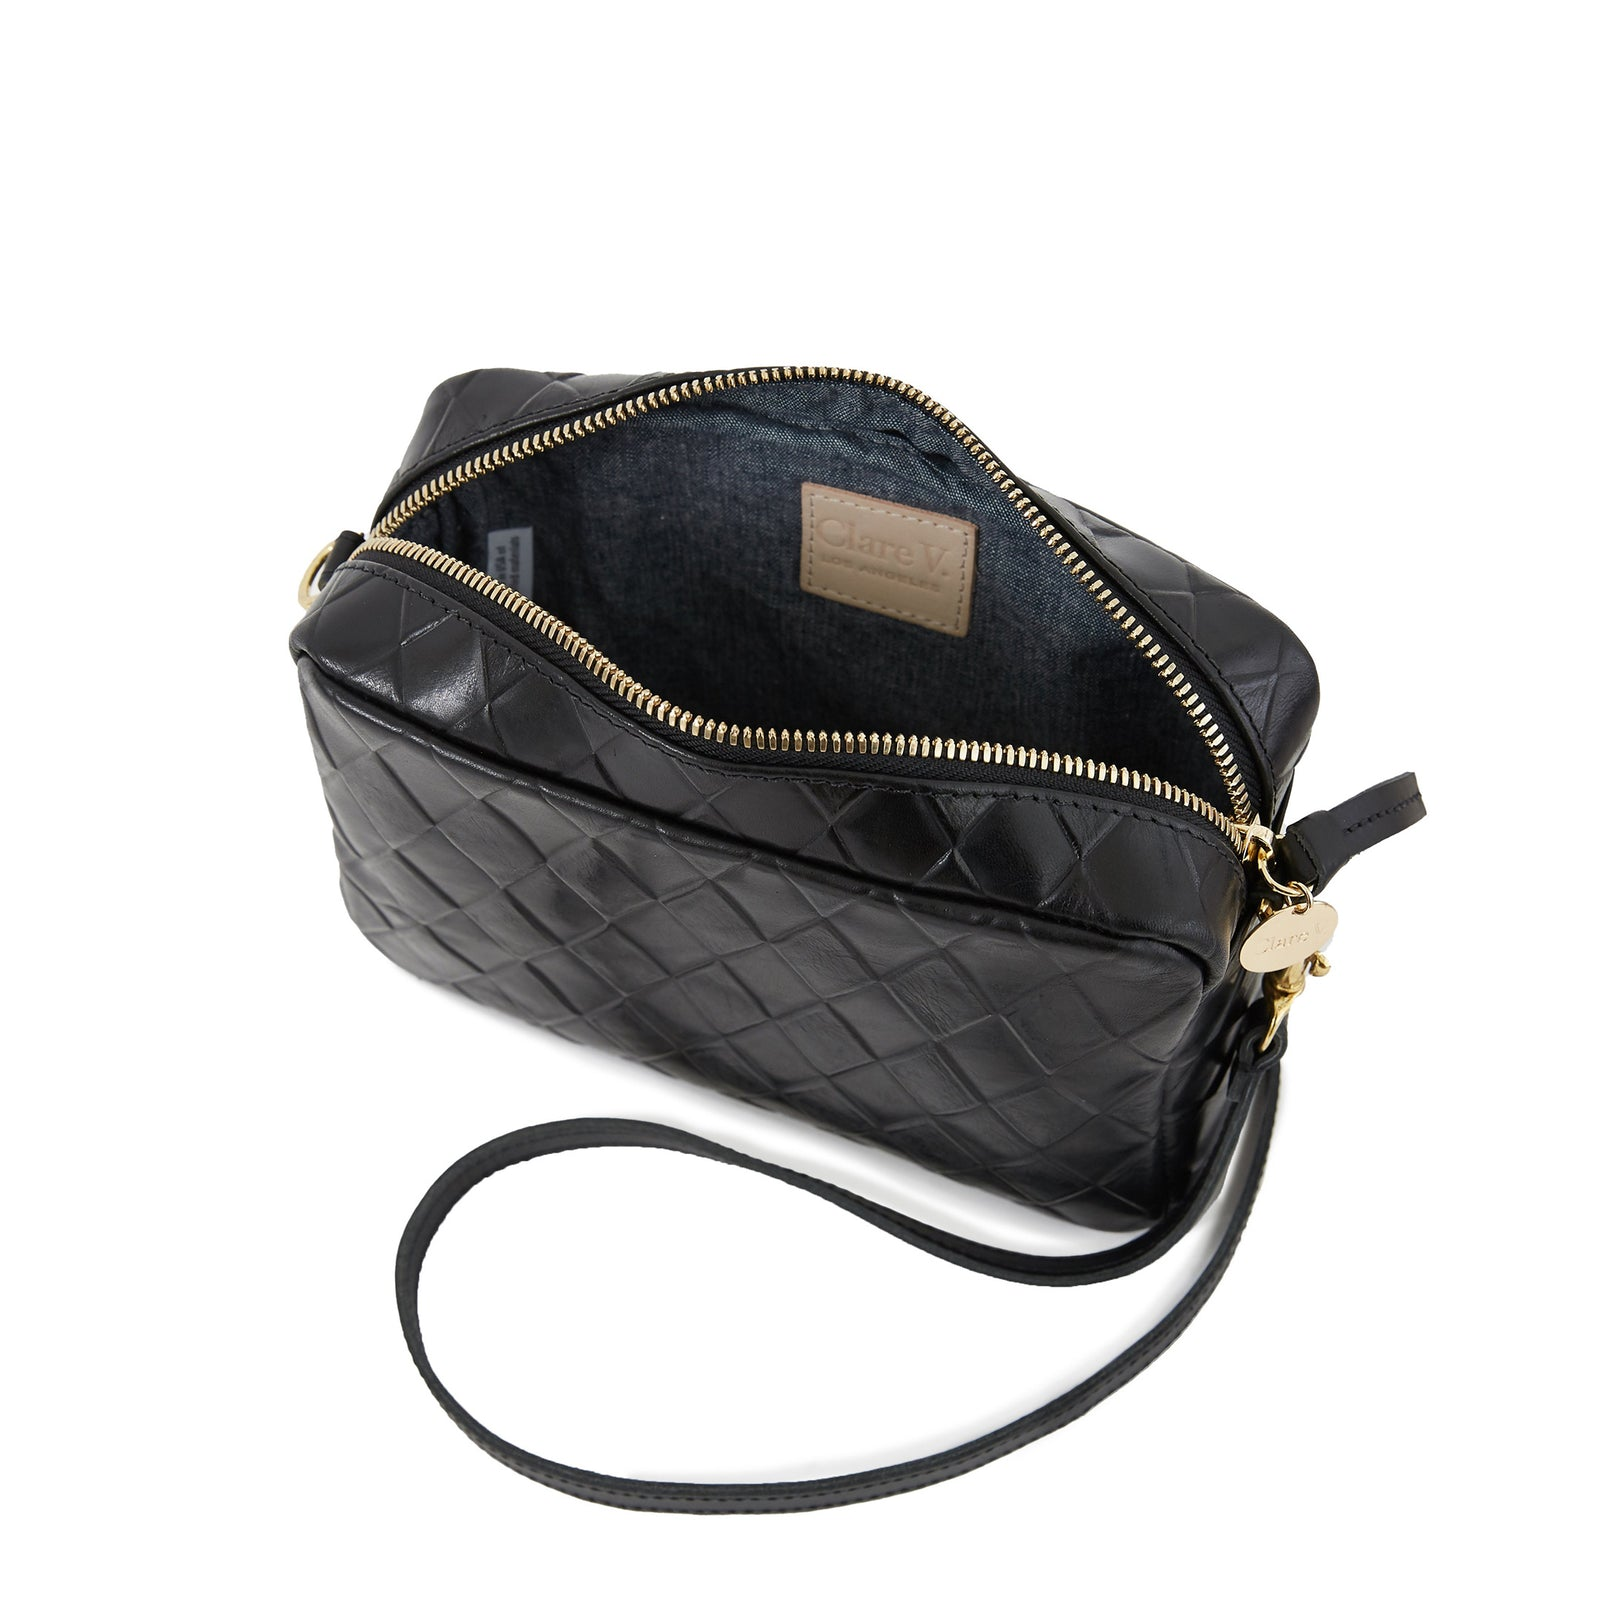 Black Diamond Midi Sac - Interior